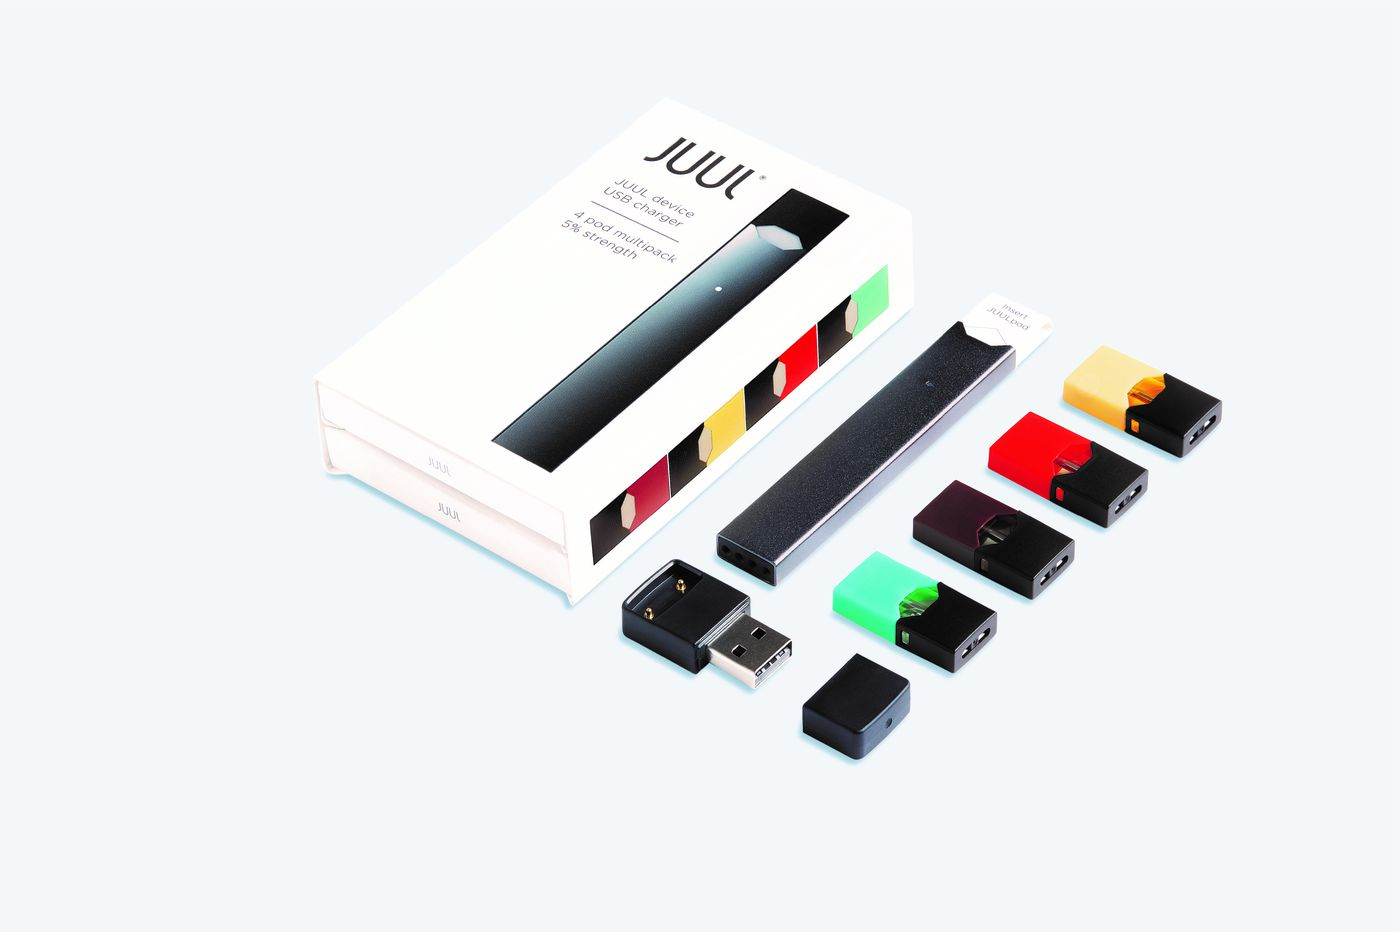 Juul will immediately stop selling flavored e-cigarettes in retail stores